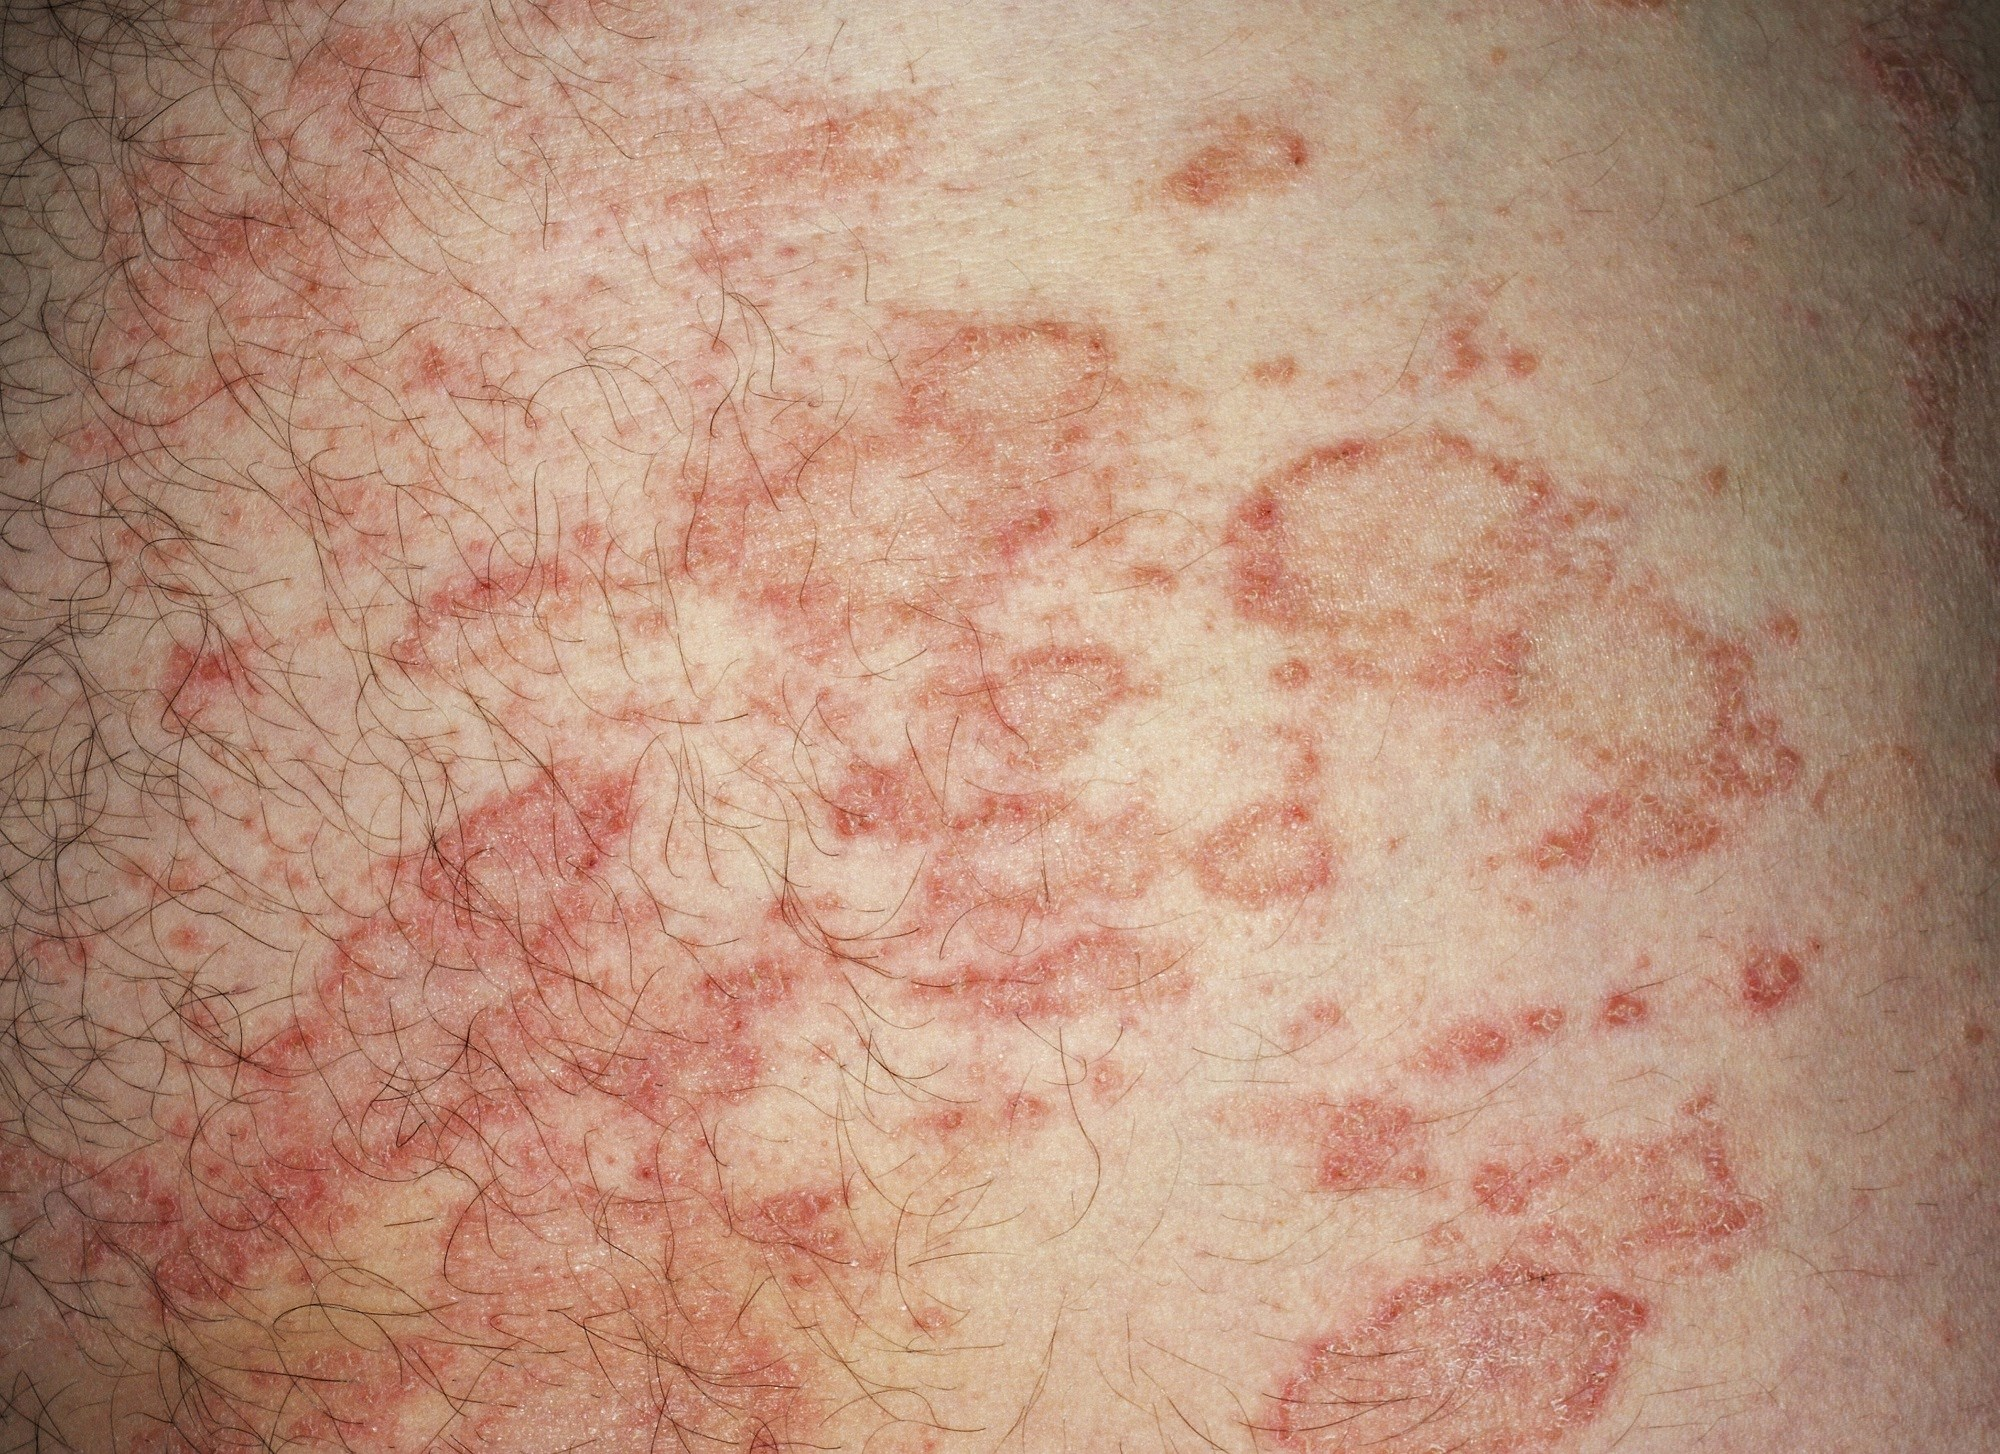 Improved Systemic, Cutaneous Abnormalities With Dupilumab in Atopic Dermatitis